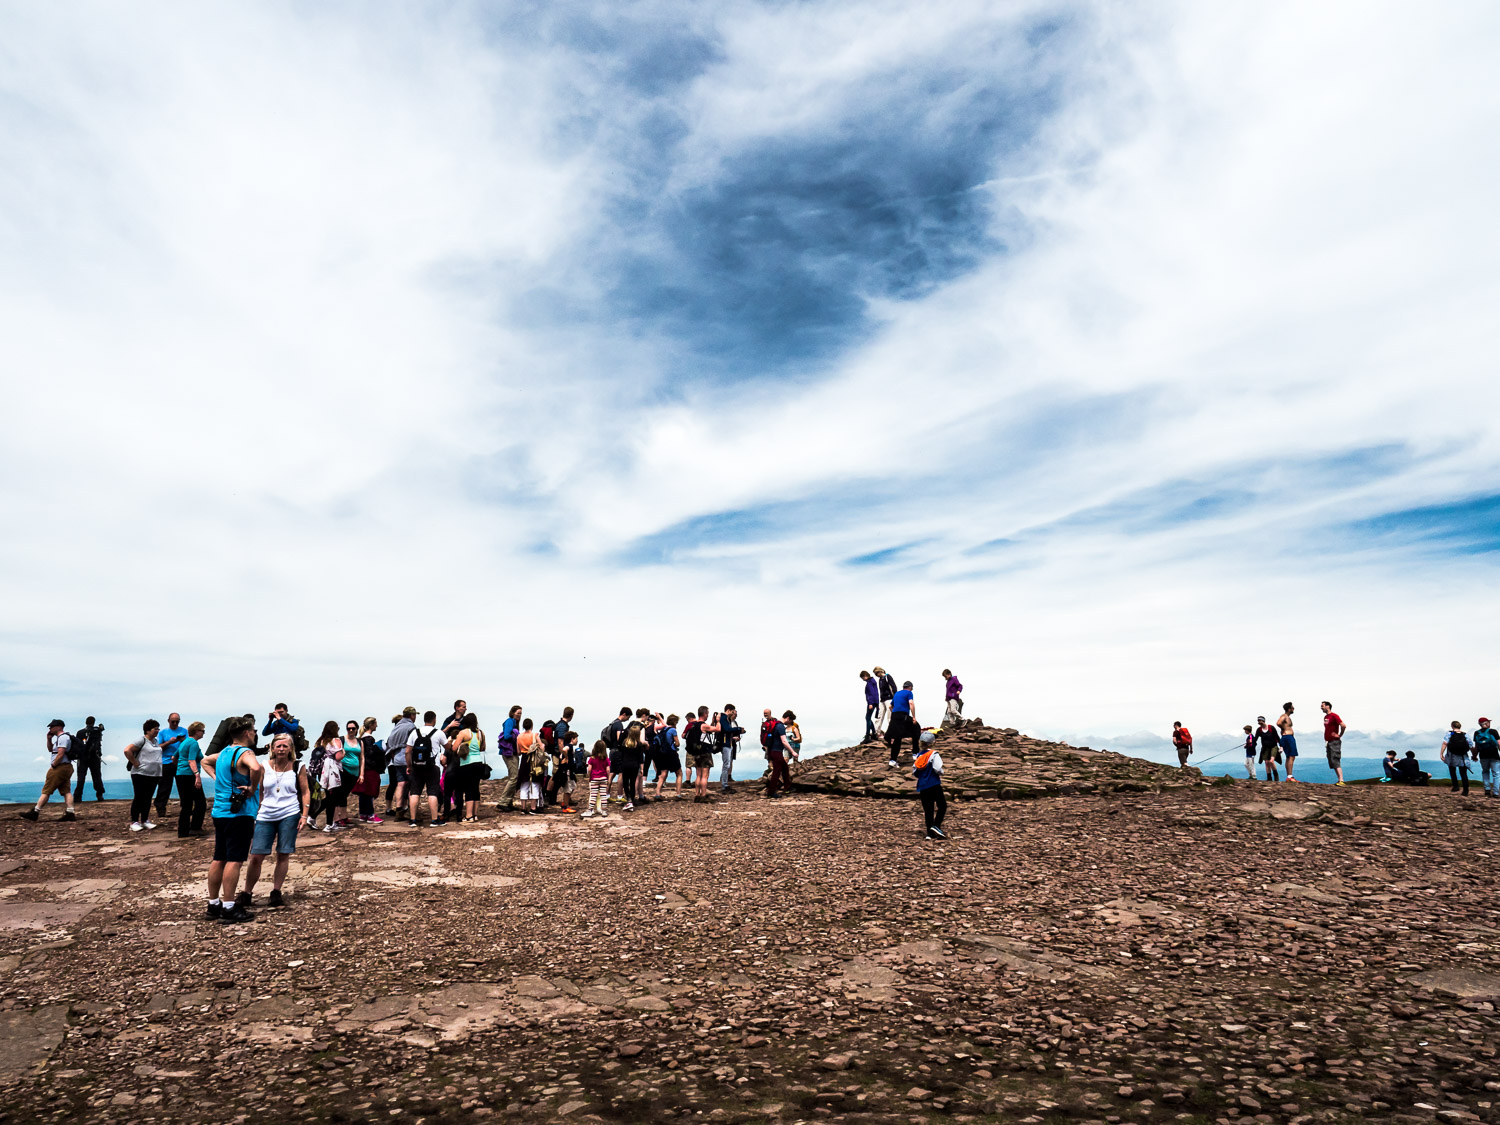 A Landscape Photograph Showing Hikers Queuing To Take Summit Selfies On The Summit Of Pen Y Fan In The Brecon Beacons National Park, Wales.